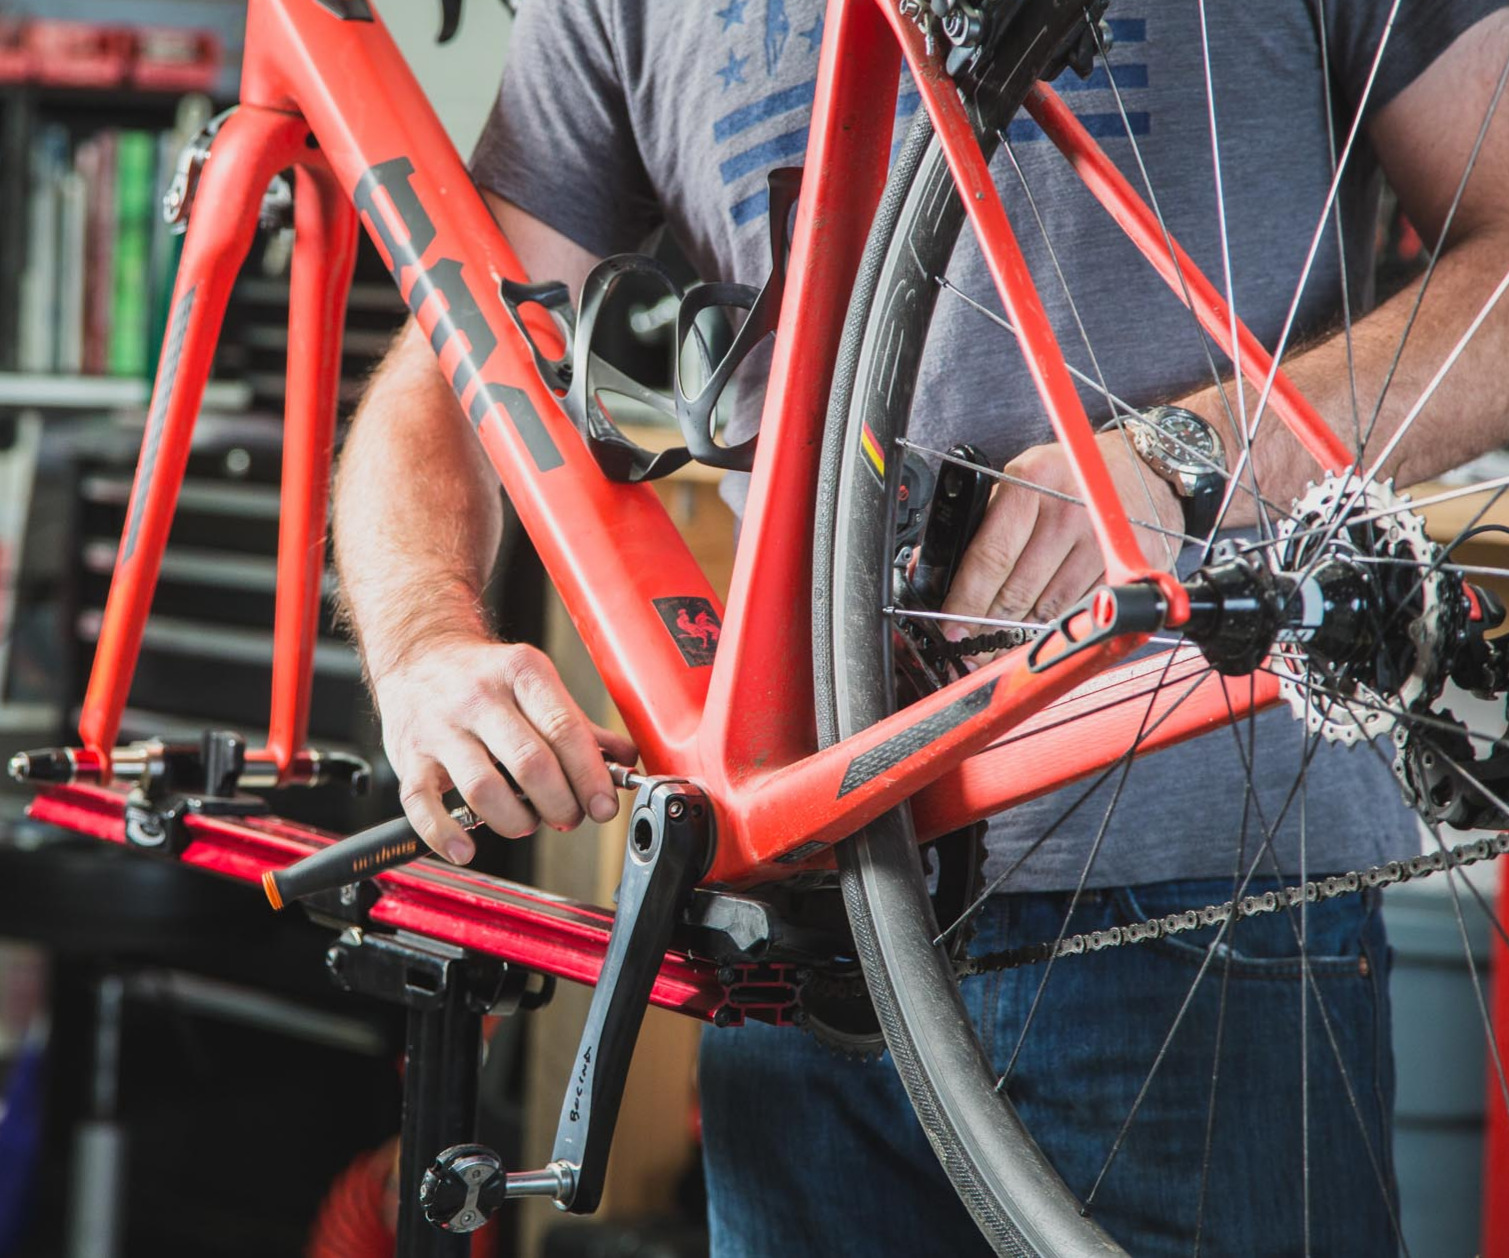 Bicycle Technician working on a bike.